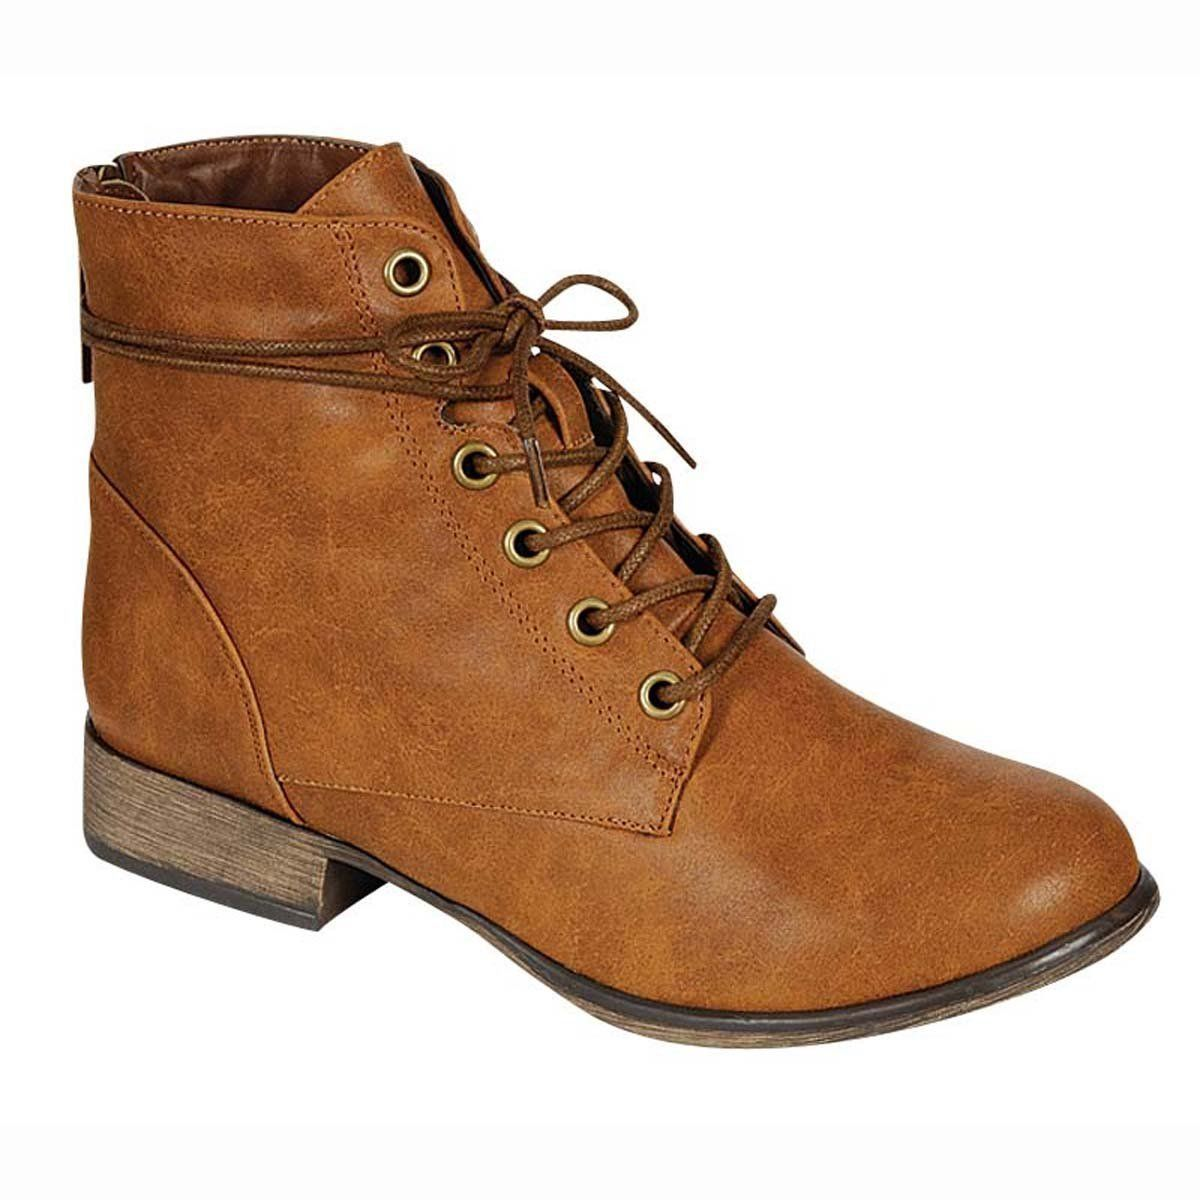 eebf387cd0581 Breckelles Women's Georgia-43 Faux Leather Ankle High Lace Up Combat Boots